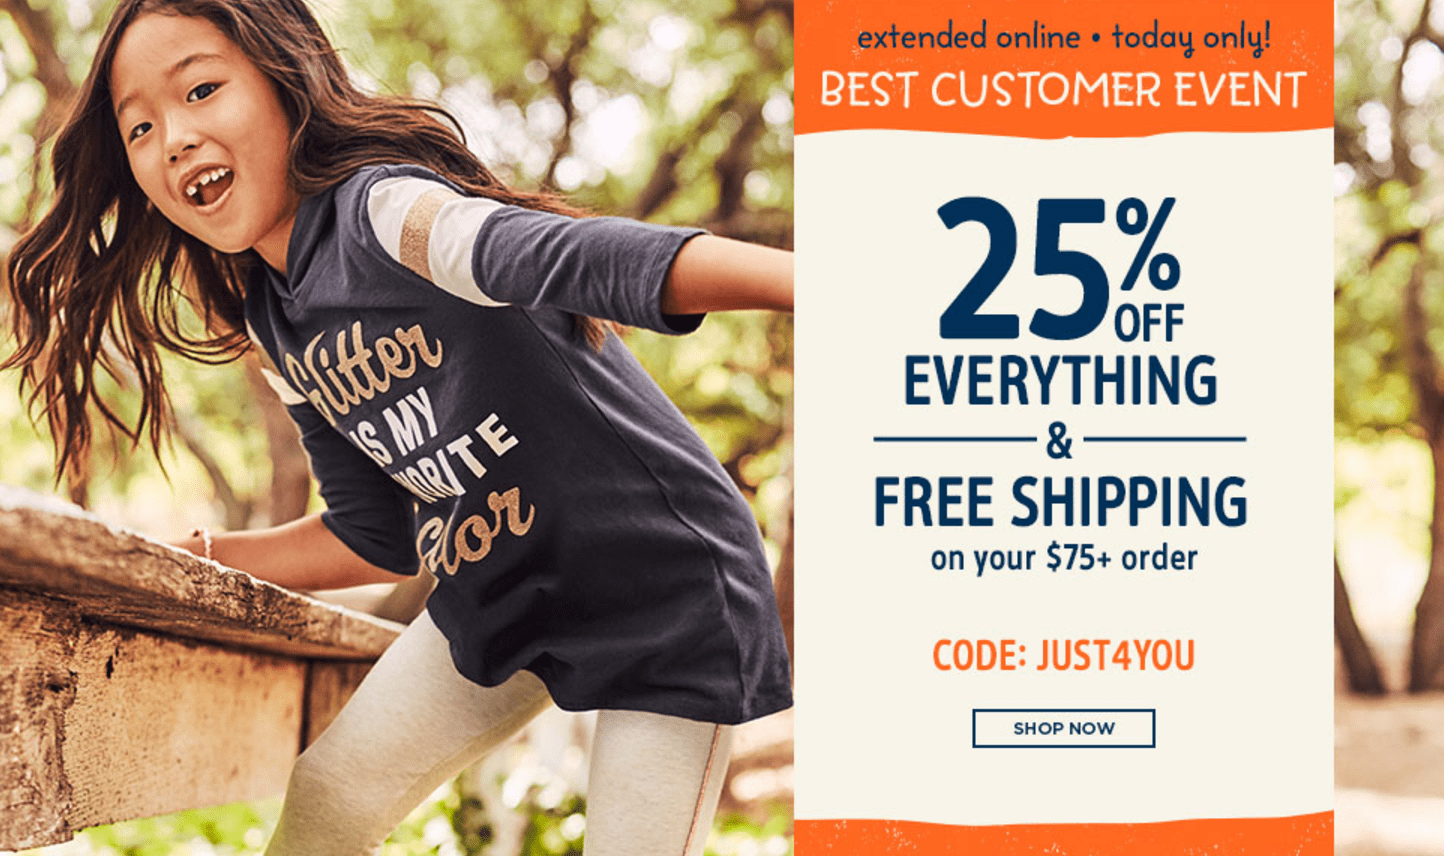 Carter's OshKosh B'gosh Canada Deals: Save 25% Off Everything & Free Shipping on $75 *Extended Today Only*